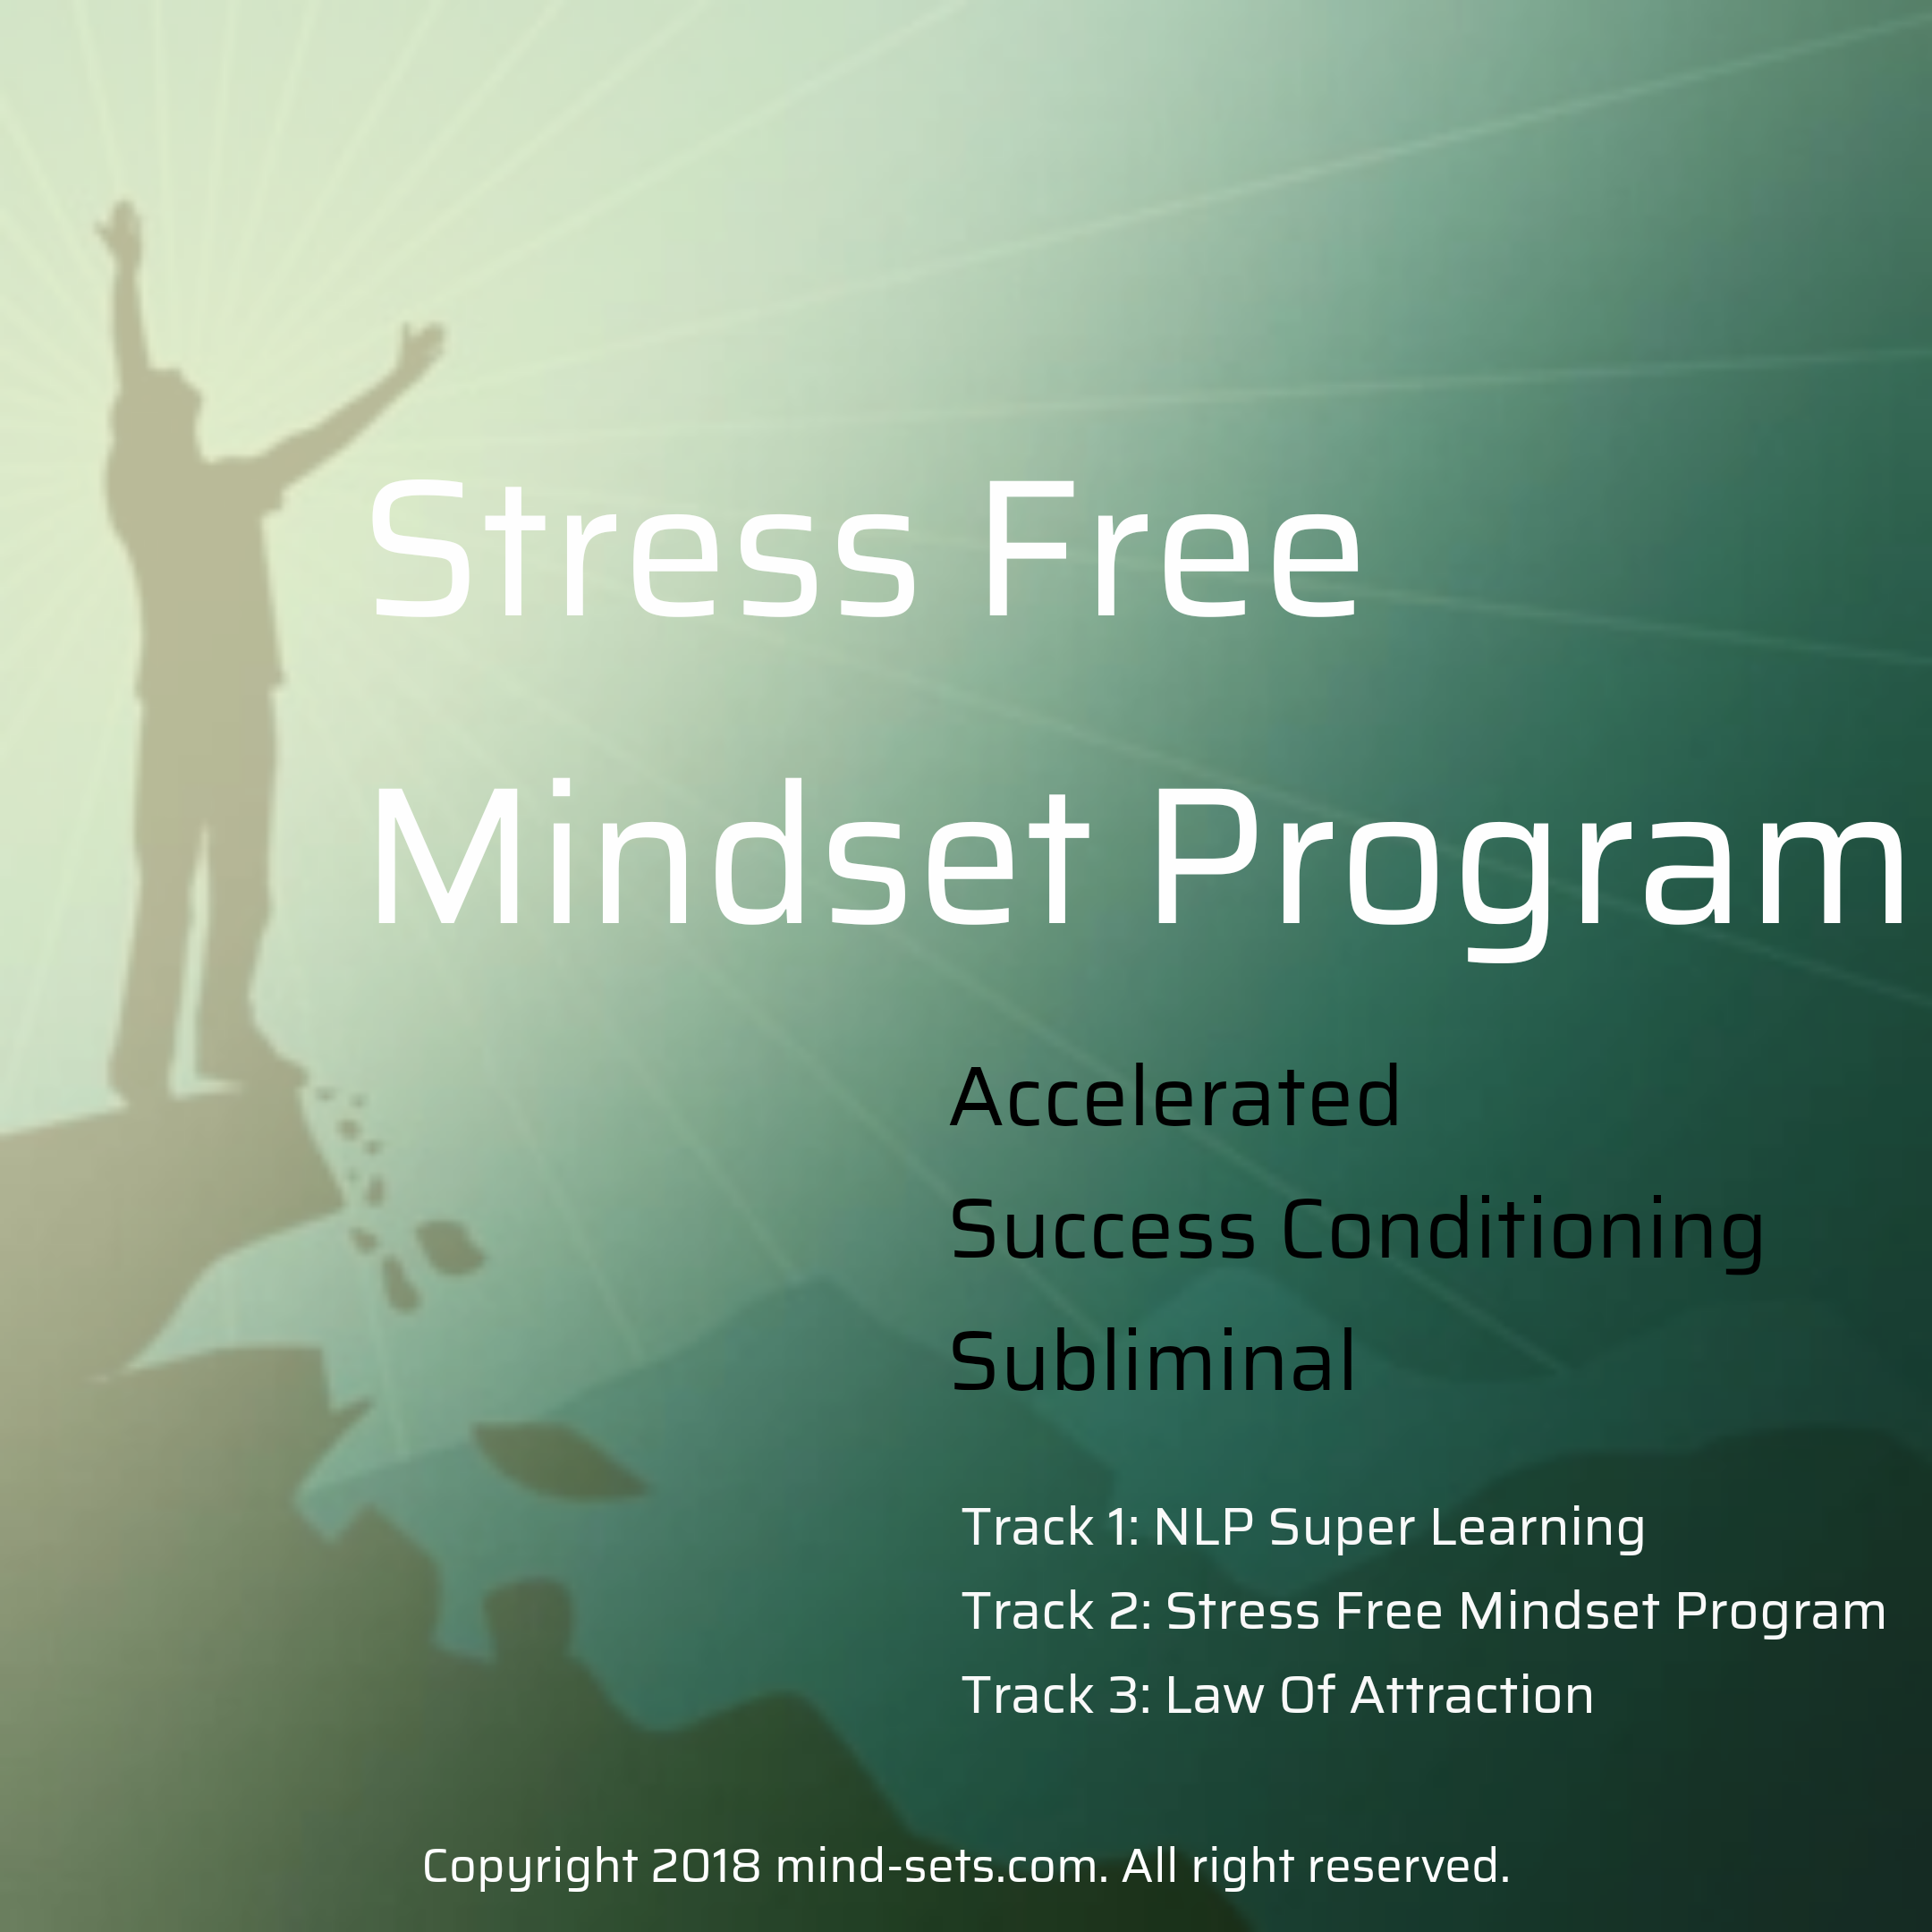 Stress Free Mindset Program